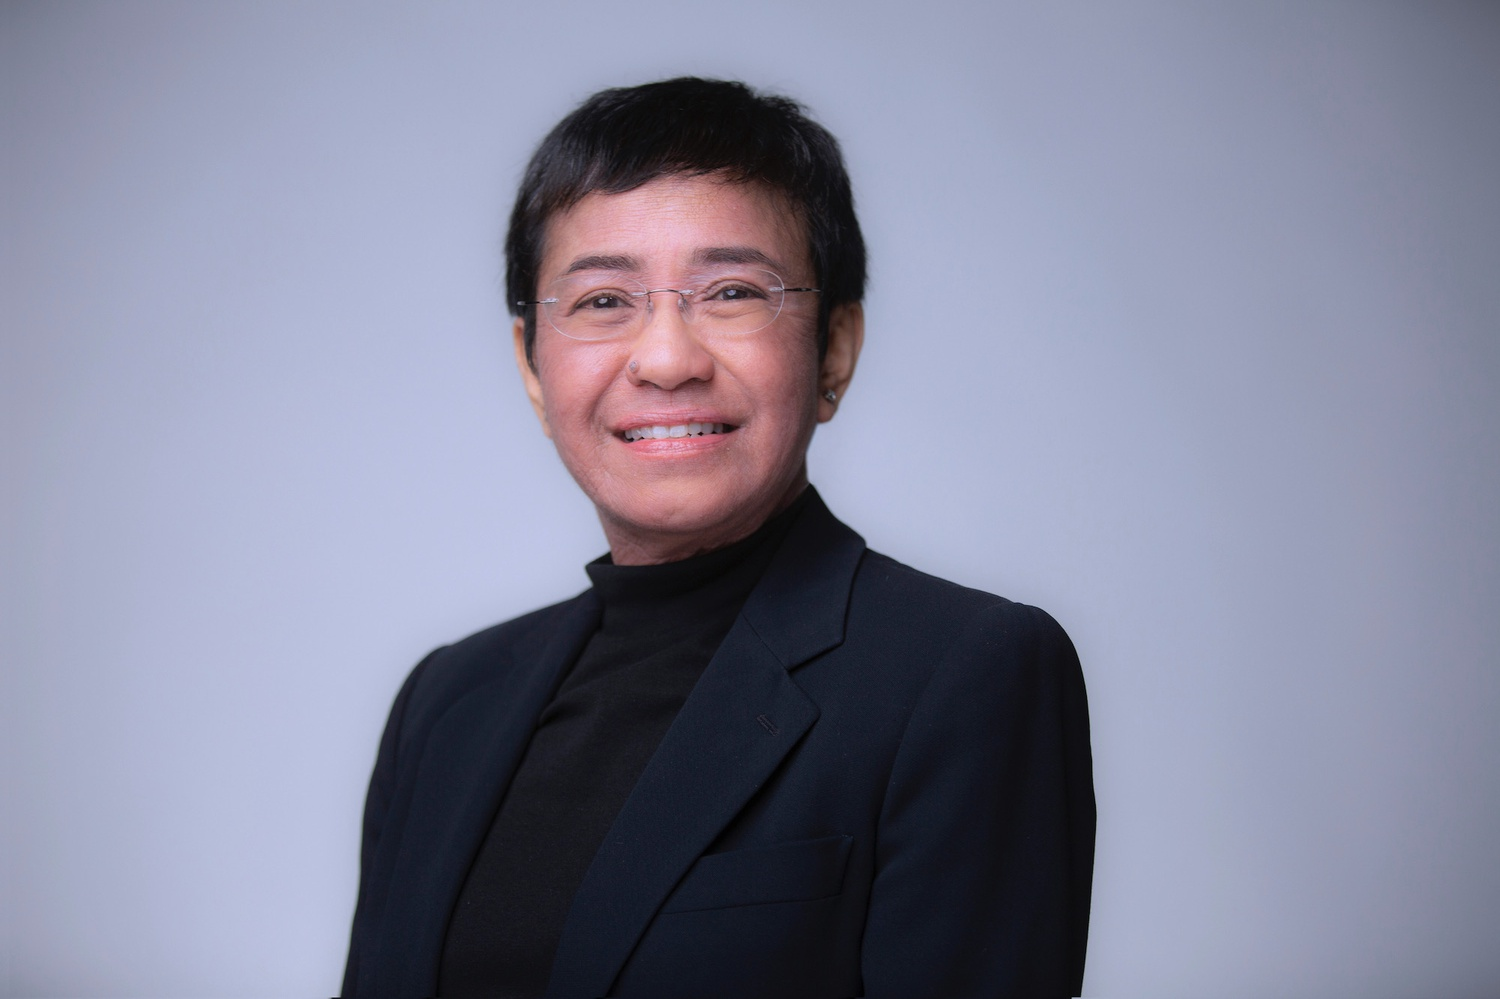 Harvard Kennedy School fellow and journalist Maria A. Ressa received the 2021 Nobel Peace Prize Friday for her work advancing freedom of the press and combating misinformation in the Philippines.